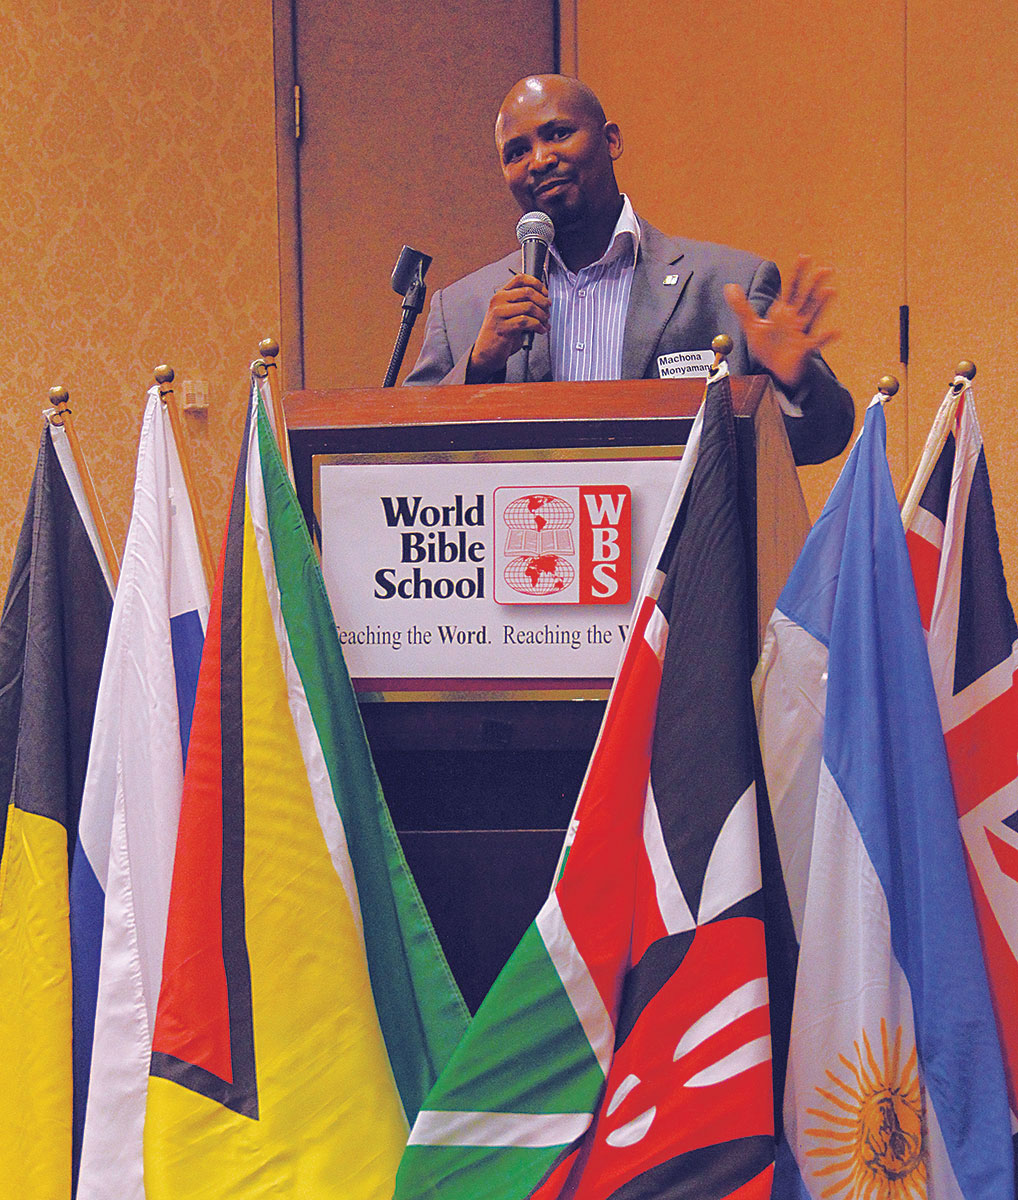 Machona Monyamane speaks during a World Bible School dinner in Oklahoma City.